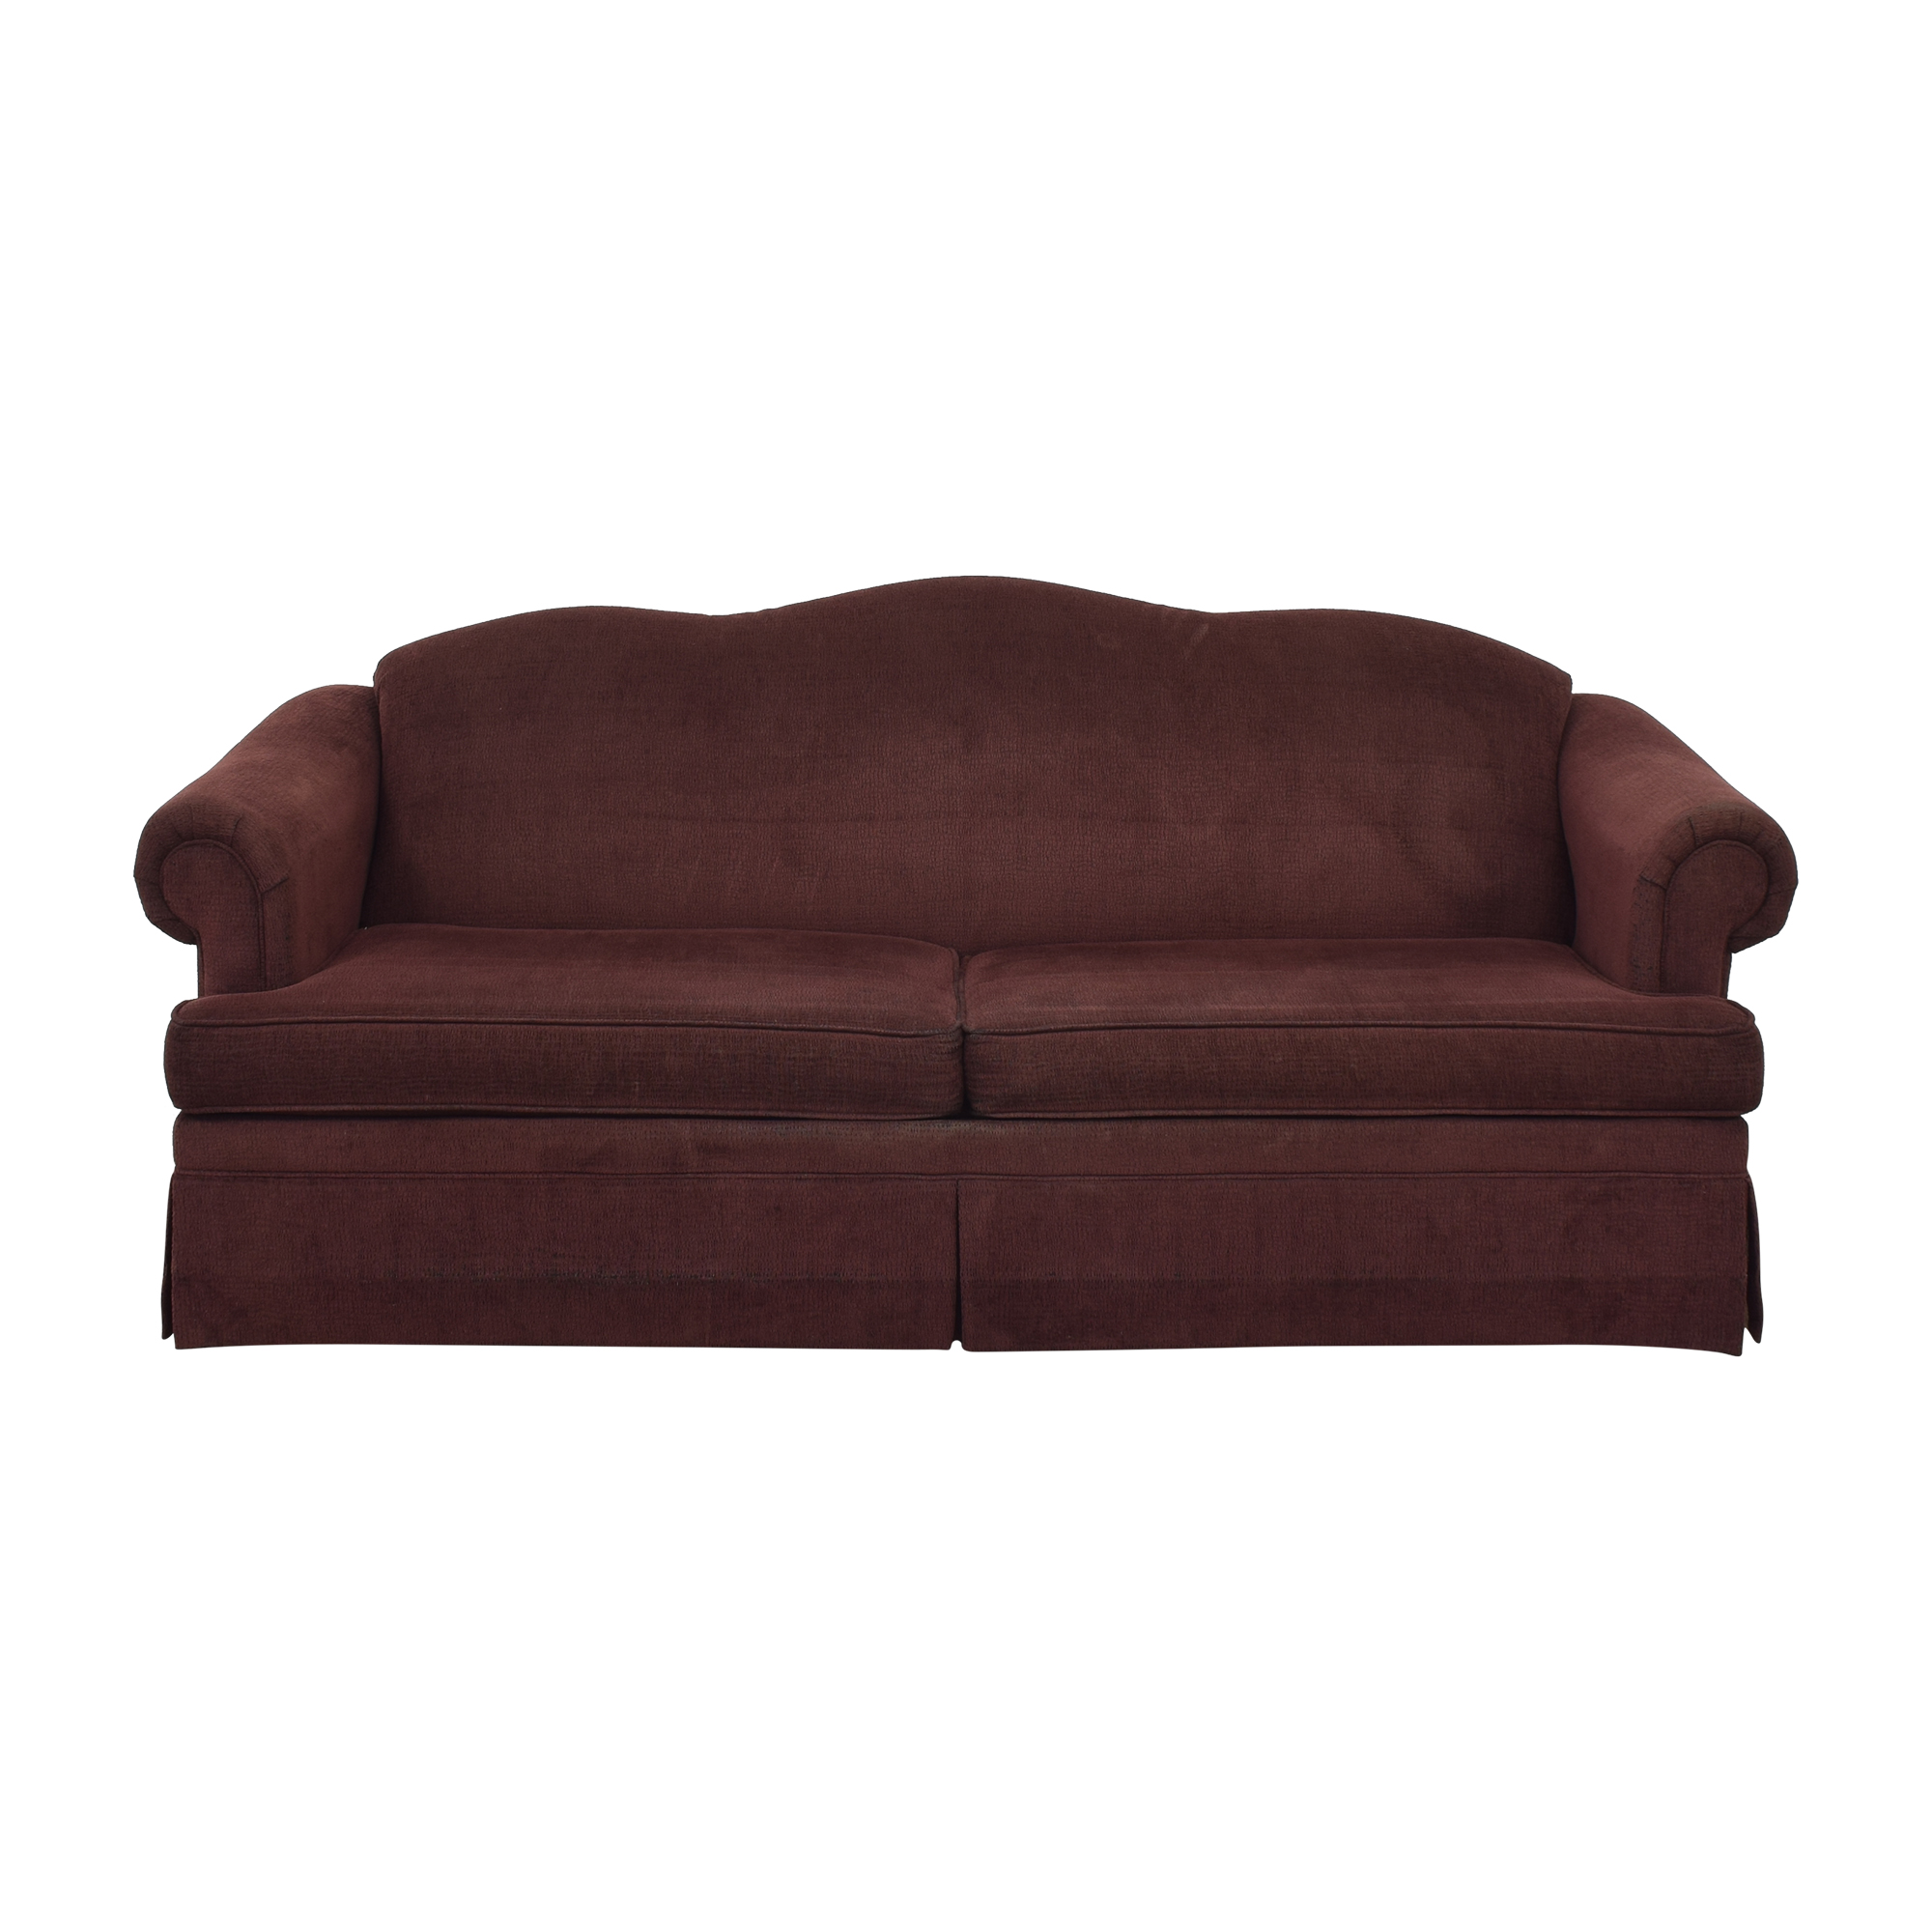 Flexsteel Flexsteel Rolled Arm Sofa price